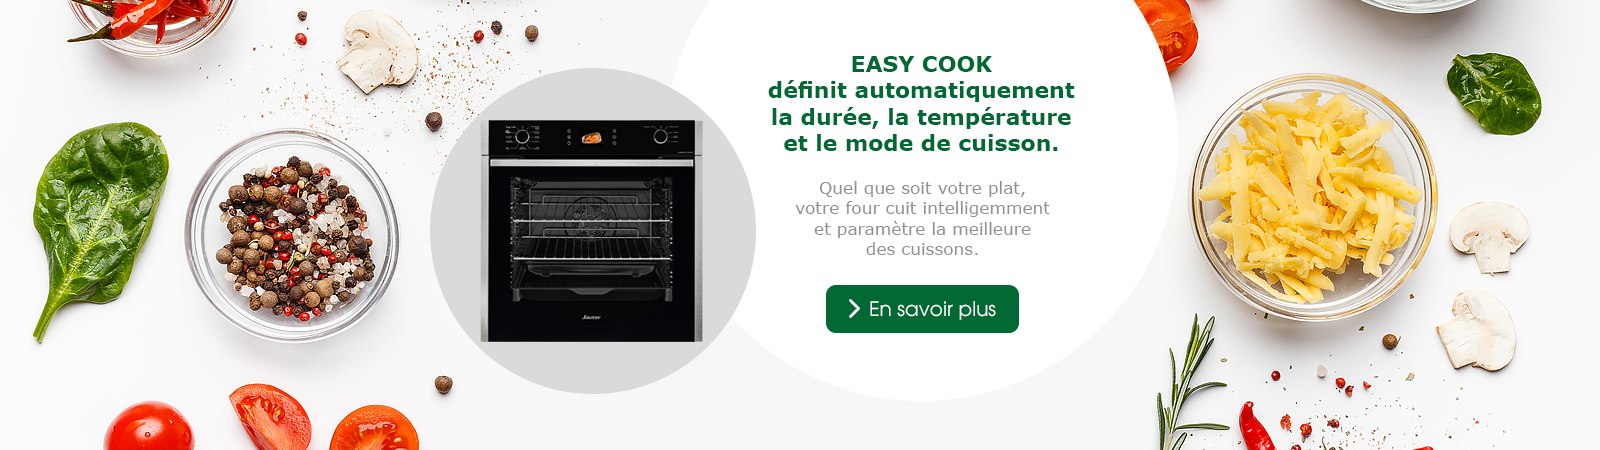 Sauter - fonction easy cook - FOURS